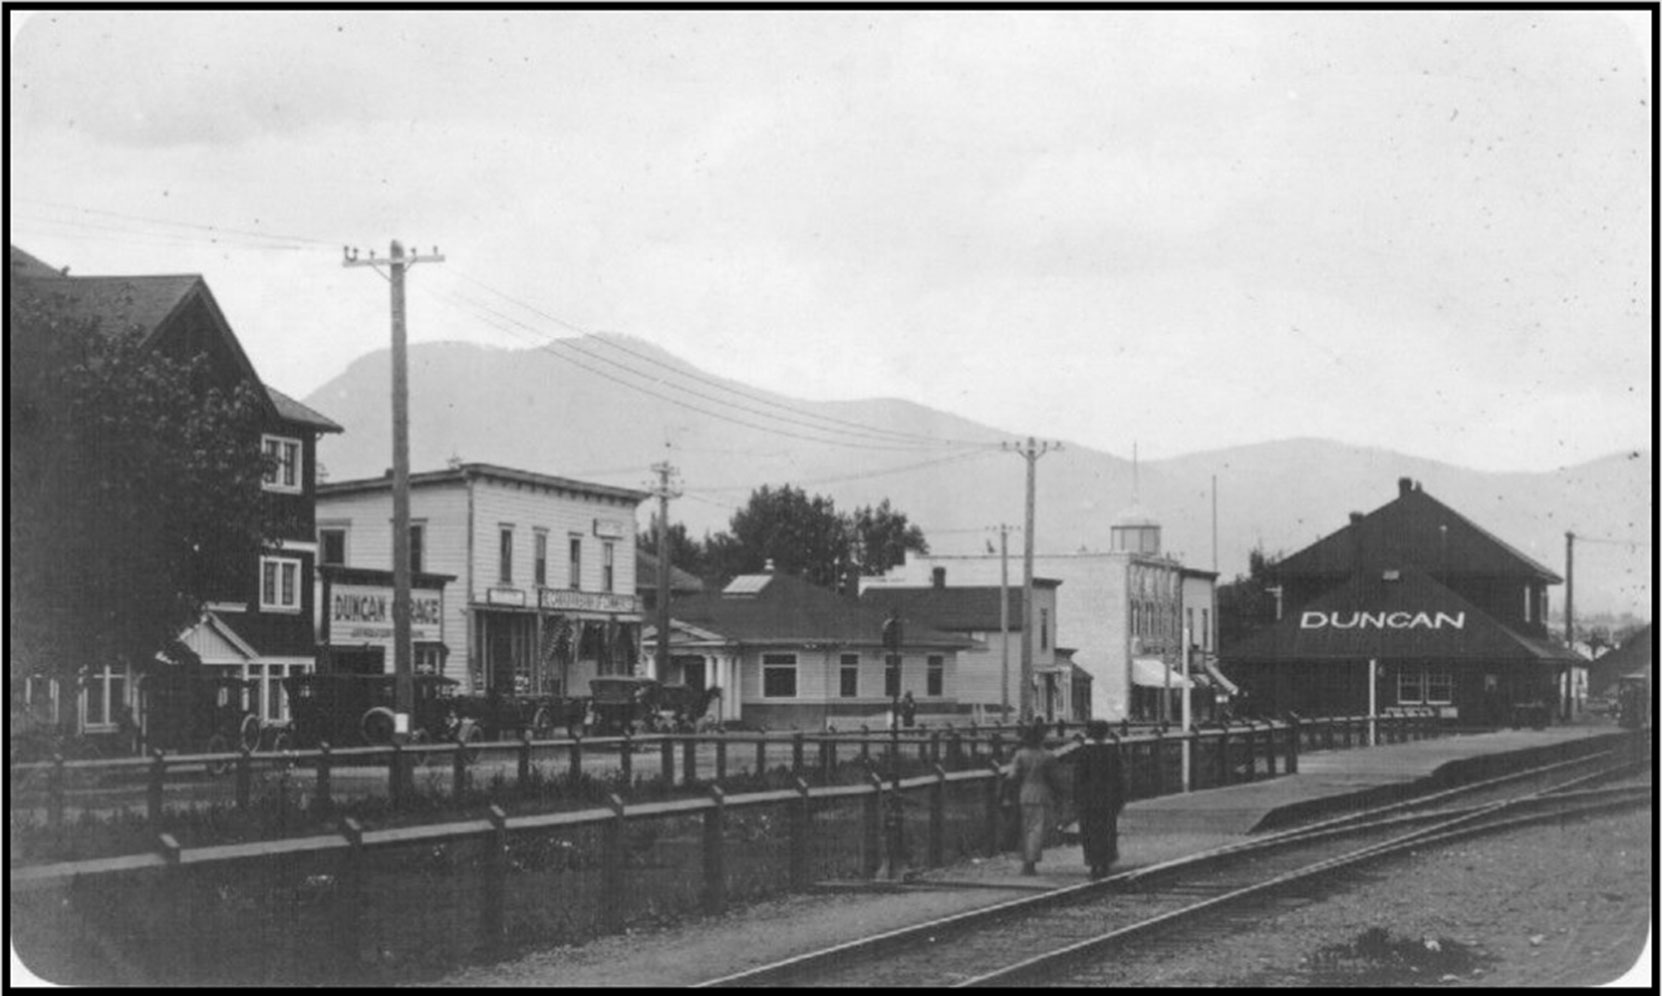 Front Street (now Canada Avenue) in downtown Duncan looking northwest, circa 1912-1913. The Duncan Masonic Temple is in the center right.